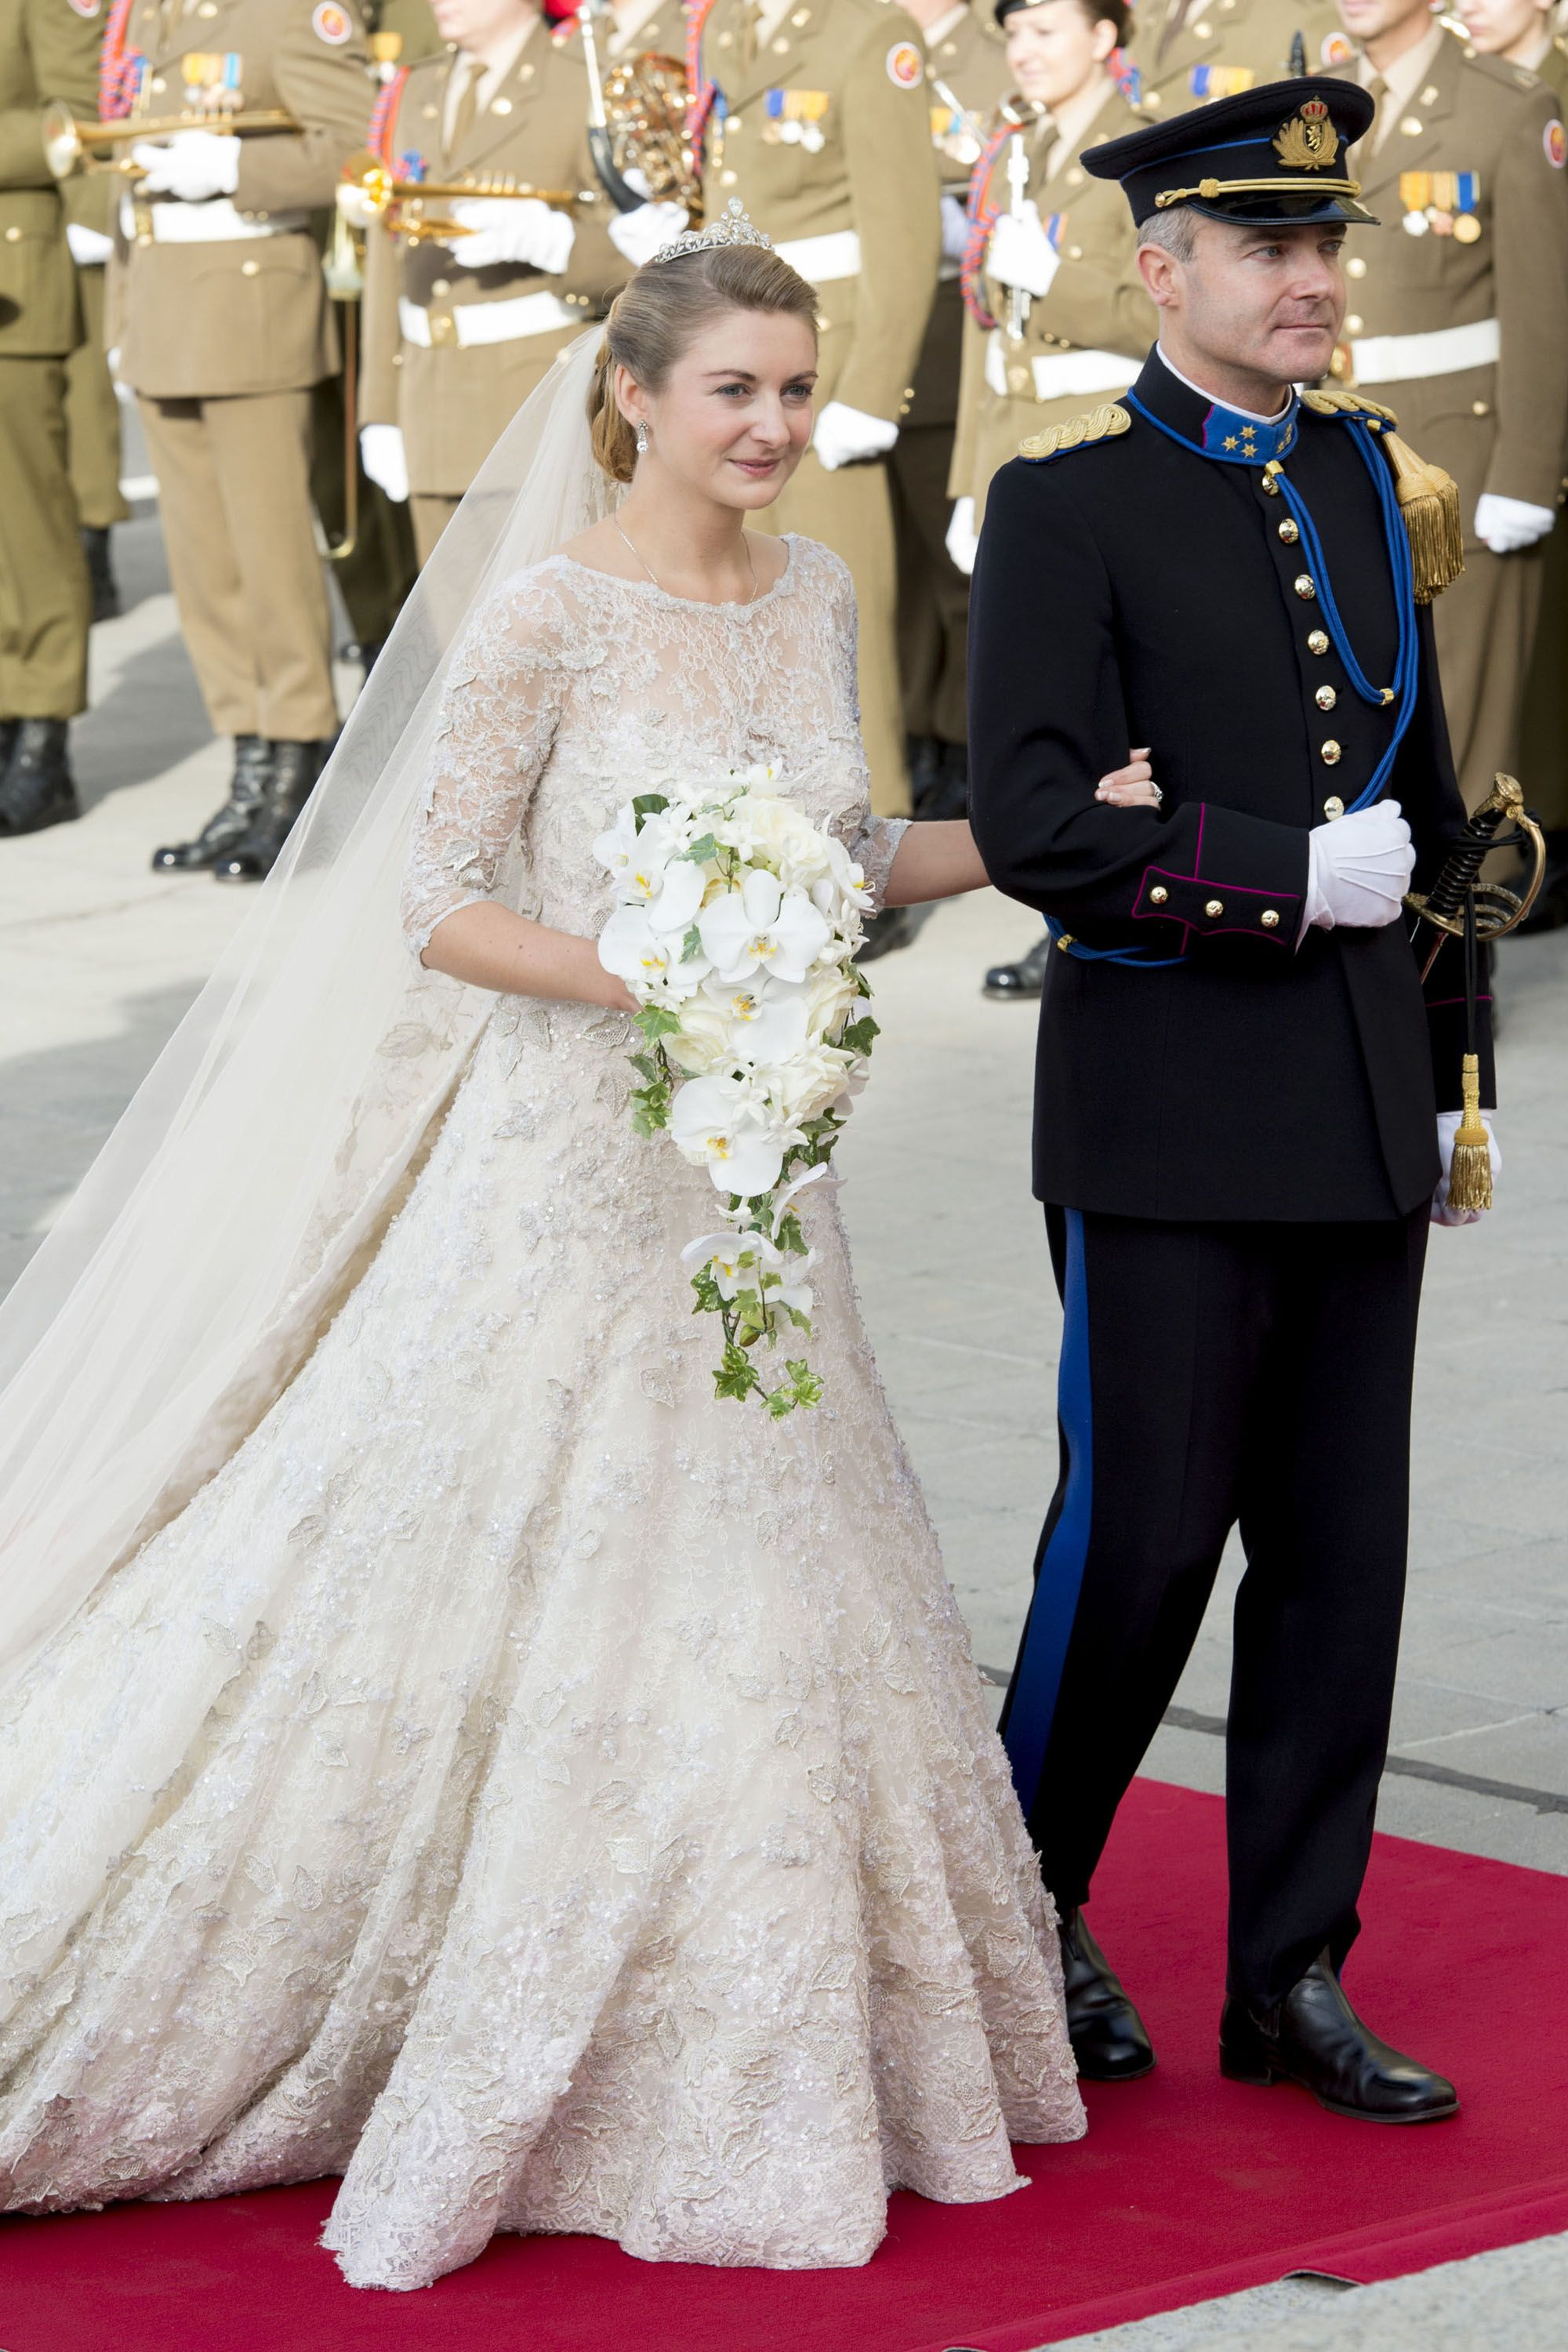 30 Most Jaw-Dropping Royal Wedding Gowns - Best Royal Wedding Dresses